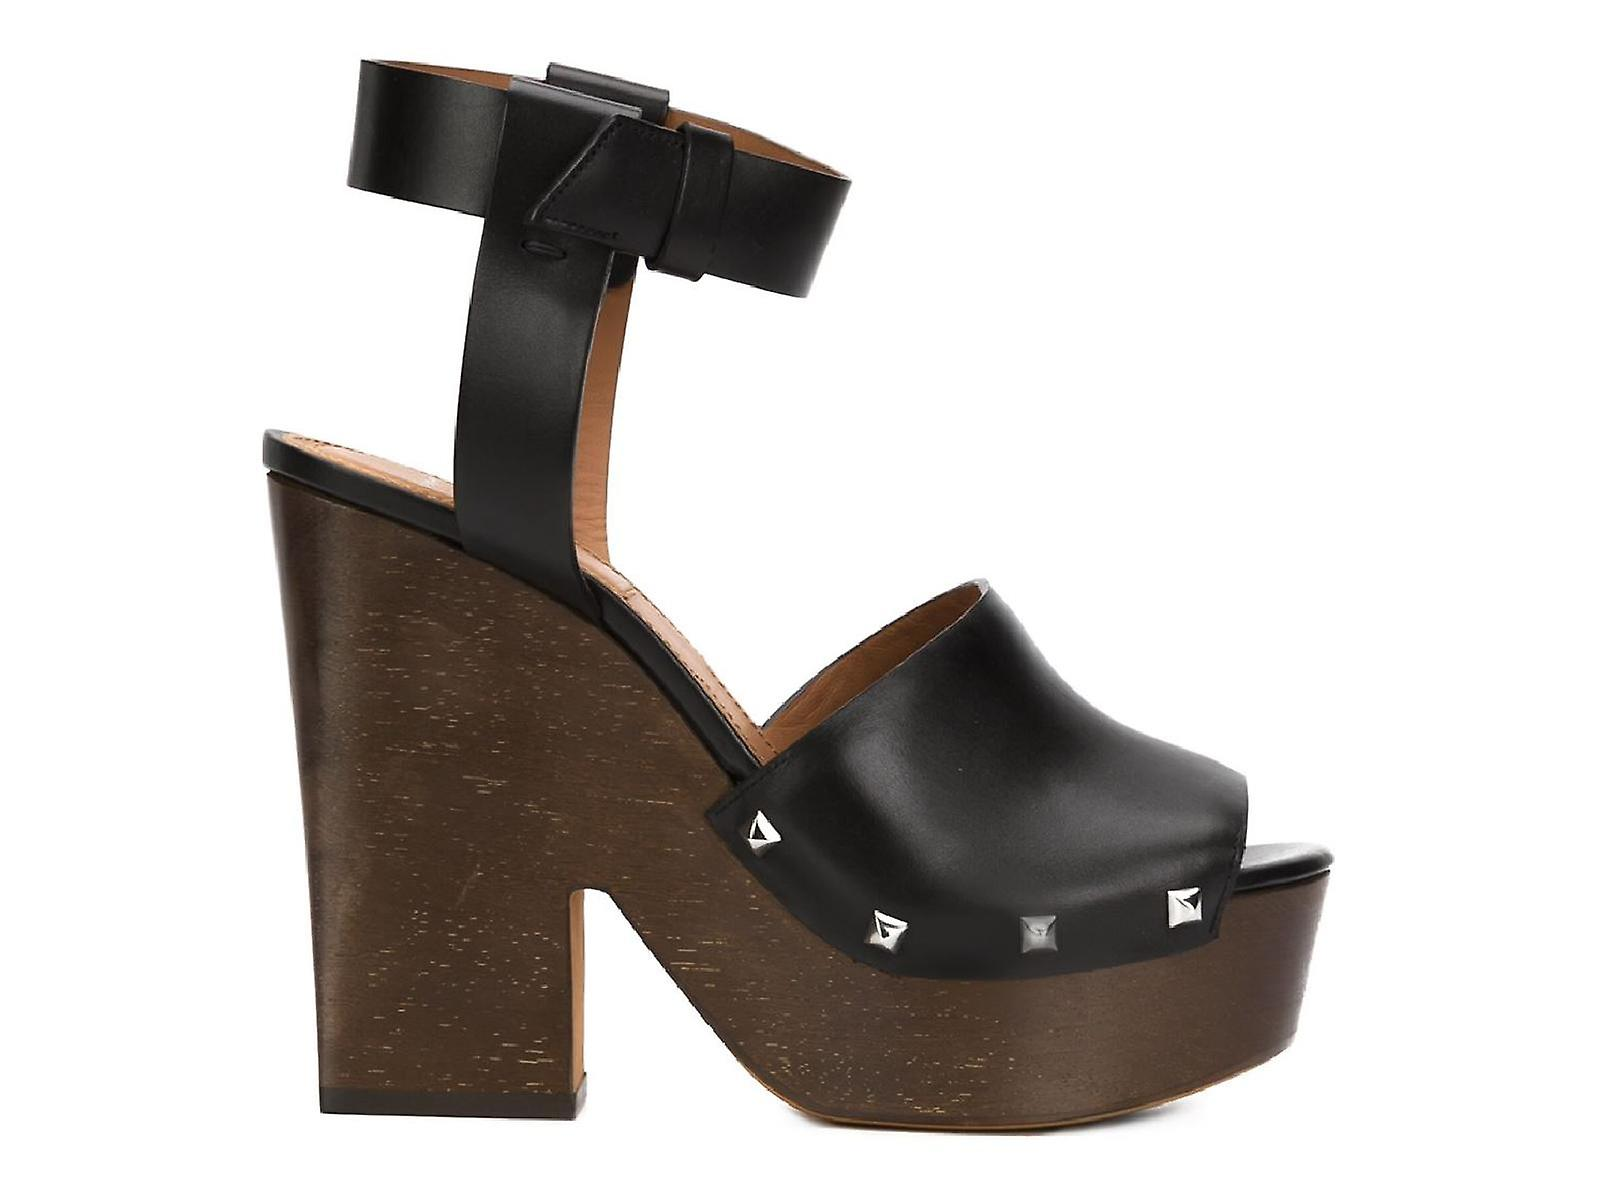 Givenchy 'Sofia' clogs sandals in black Calf leather bCphL